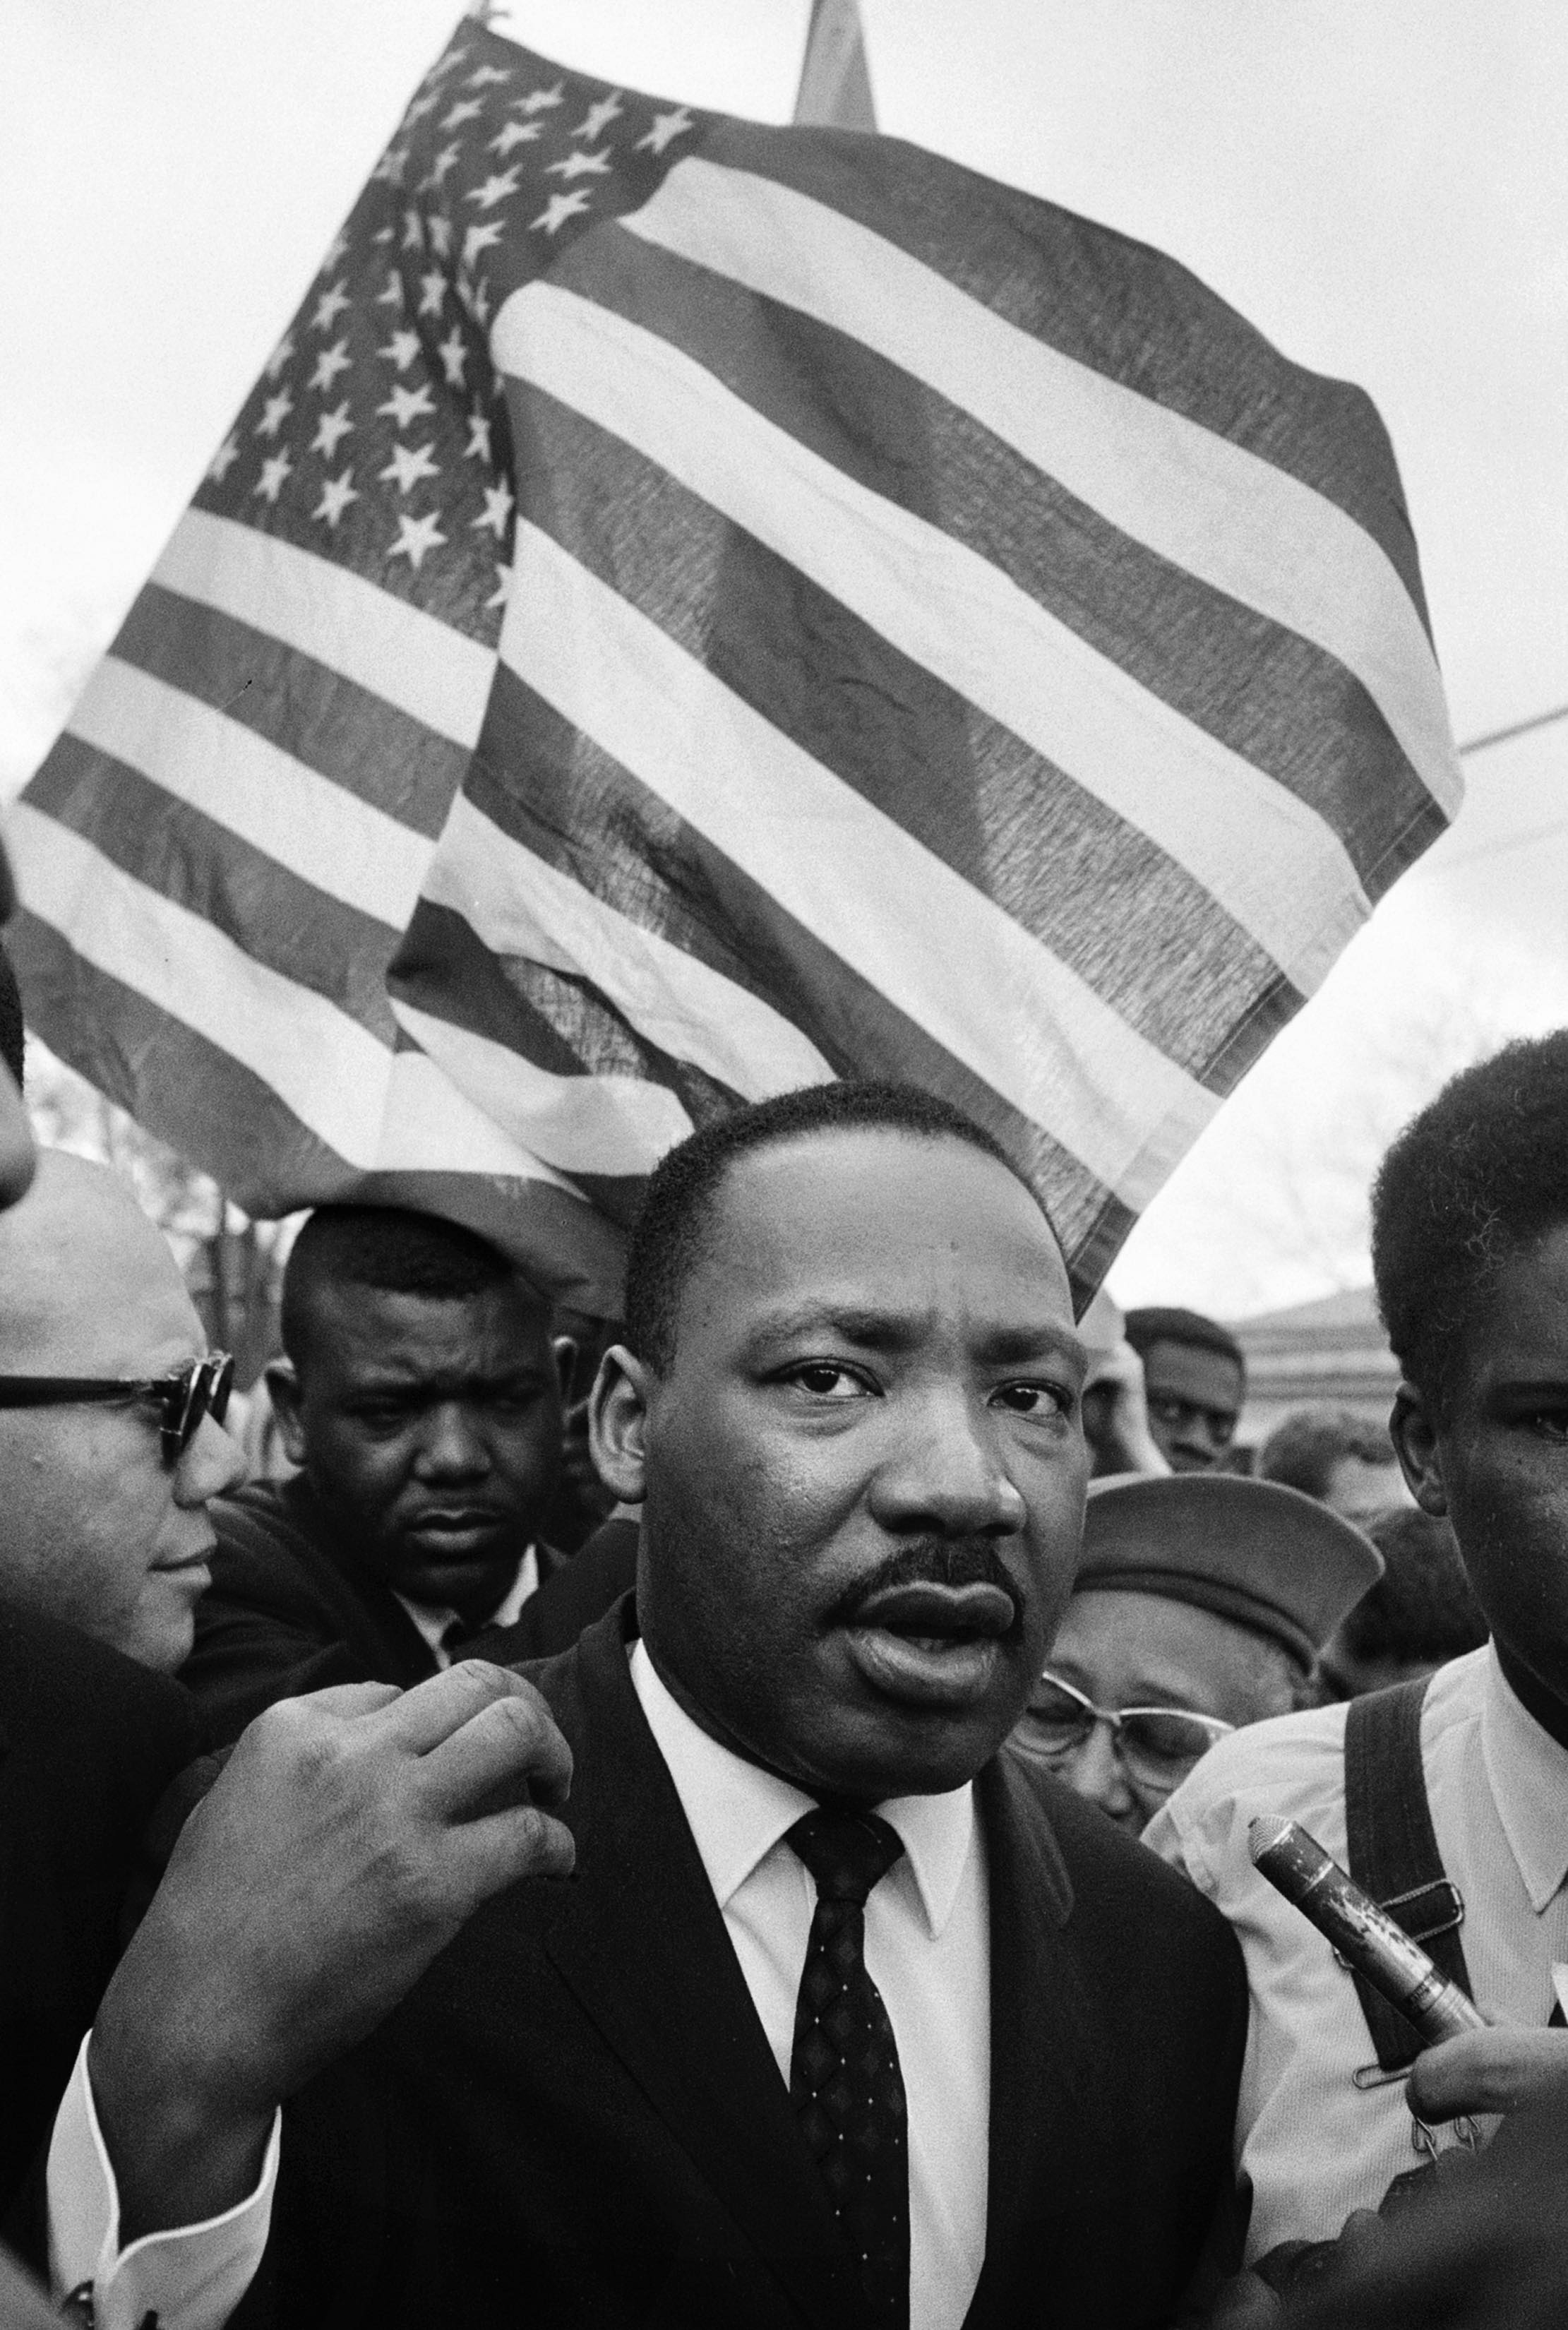 Martin Luther King with Flag, Selma March 1965 © Steve Schapiro